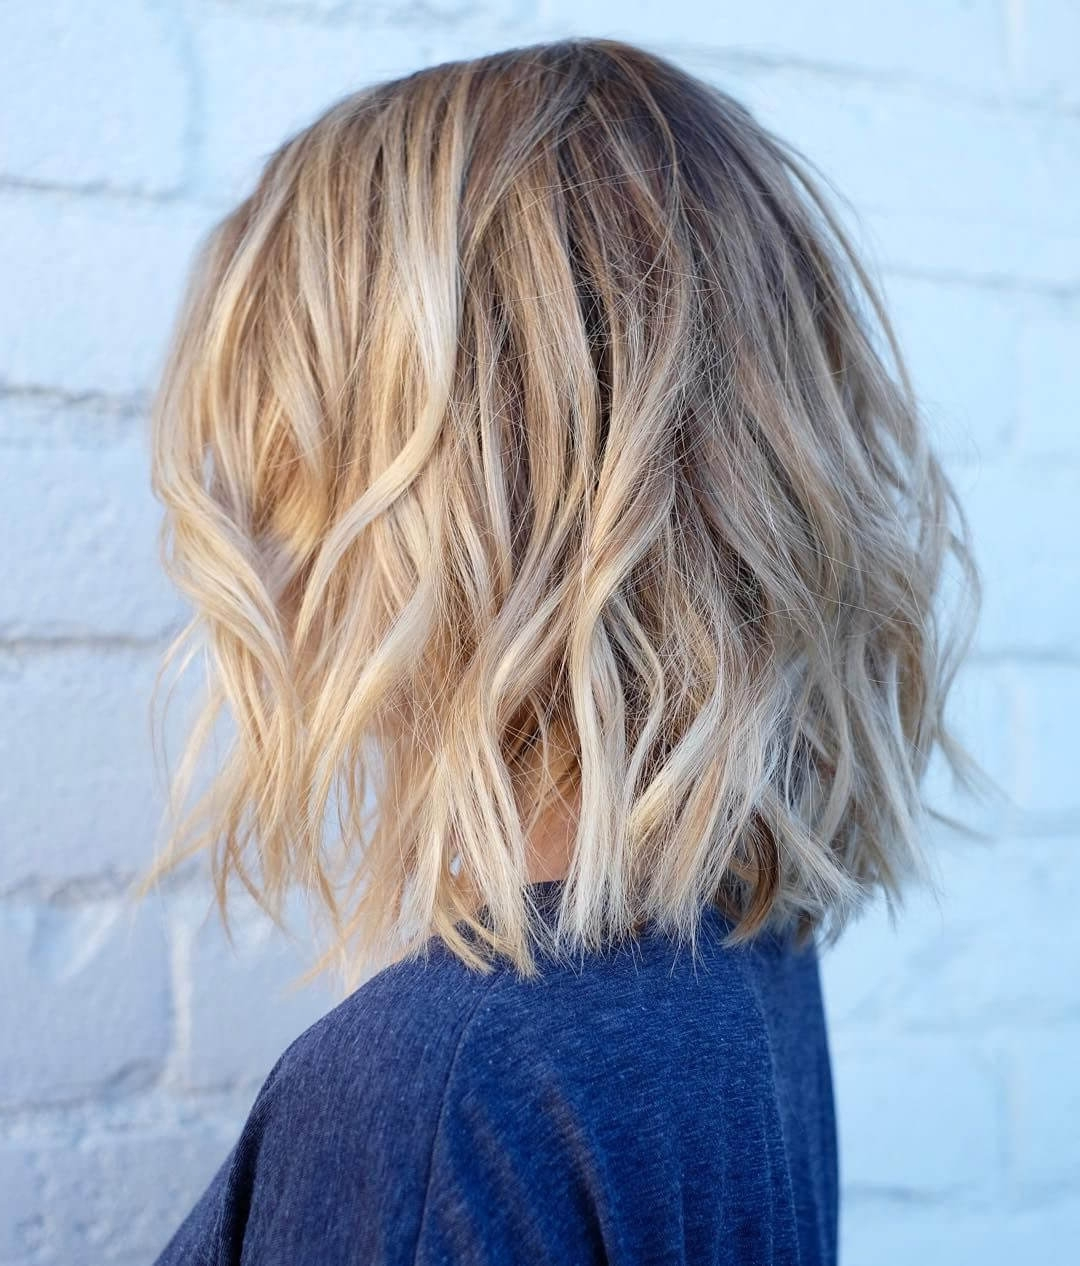 50 Fresh Short Blonde Hair Ideas To Update Your Style In 2018 Inside Most Up To Date Caramel Blonde Lob With Bangs (View 11 of 20)